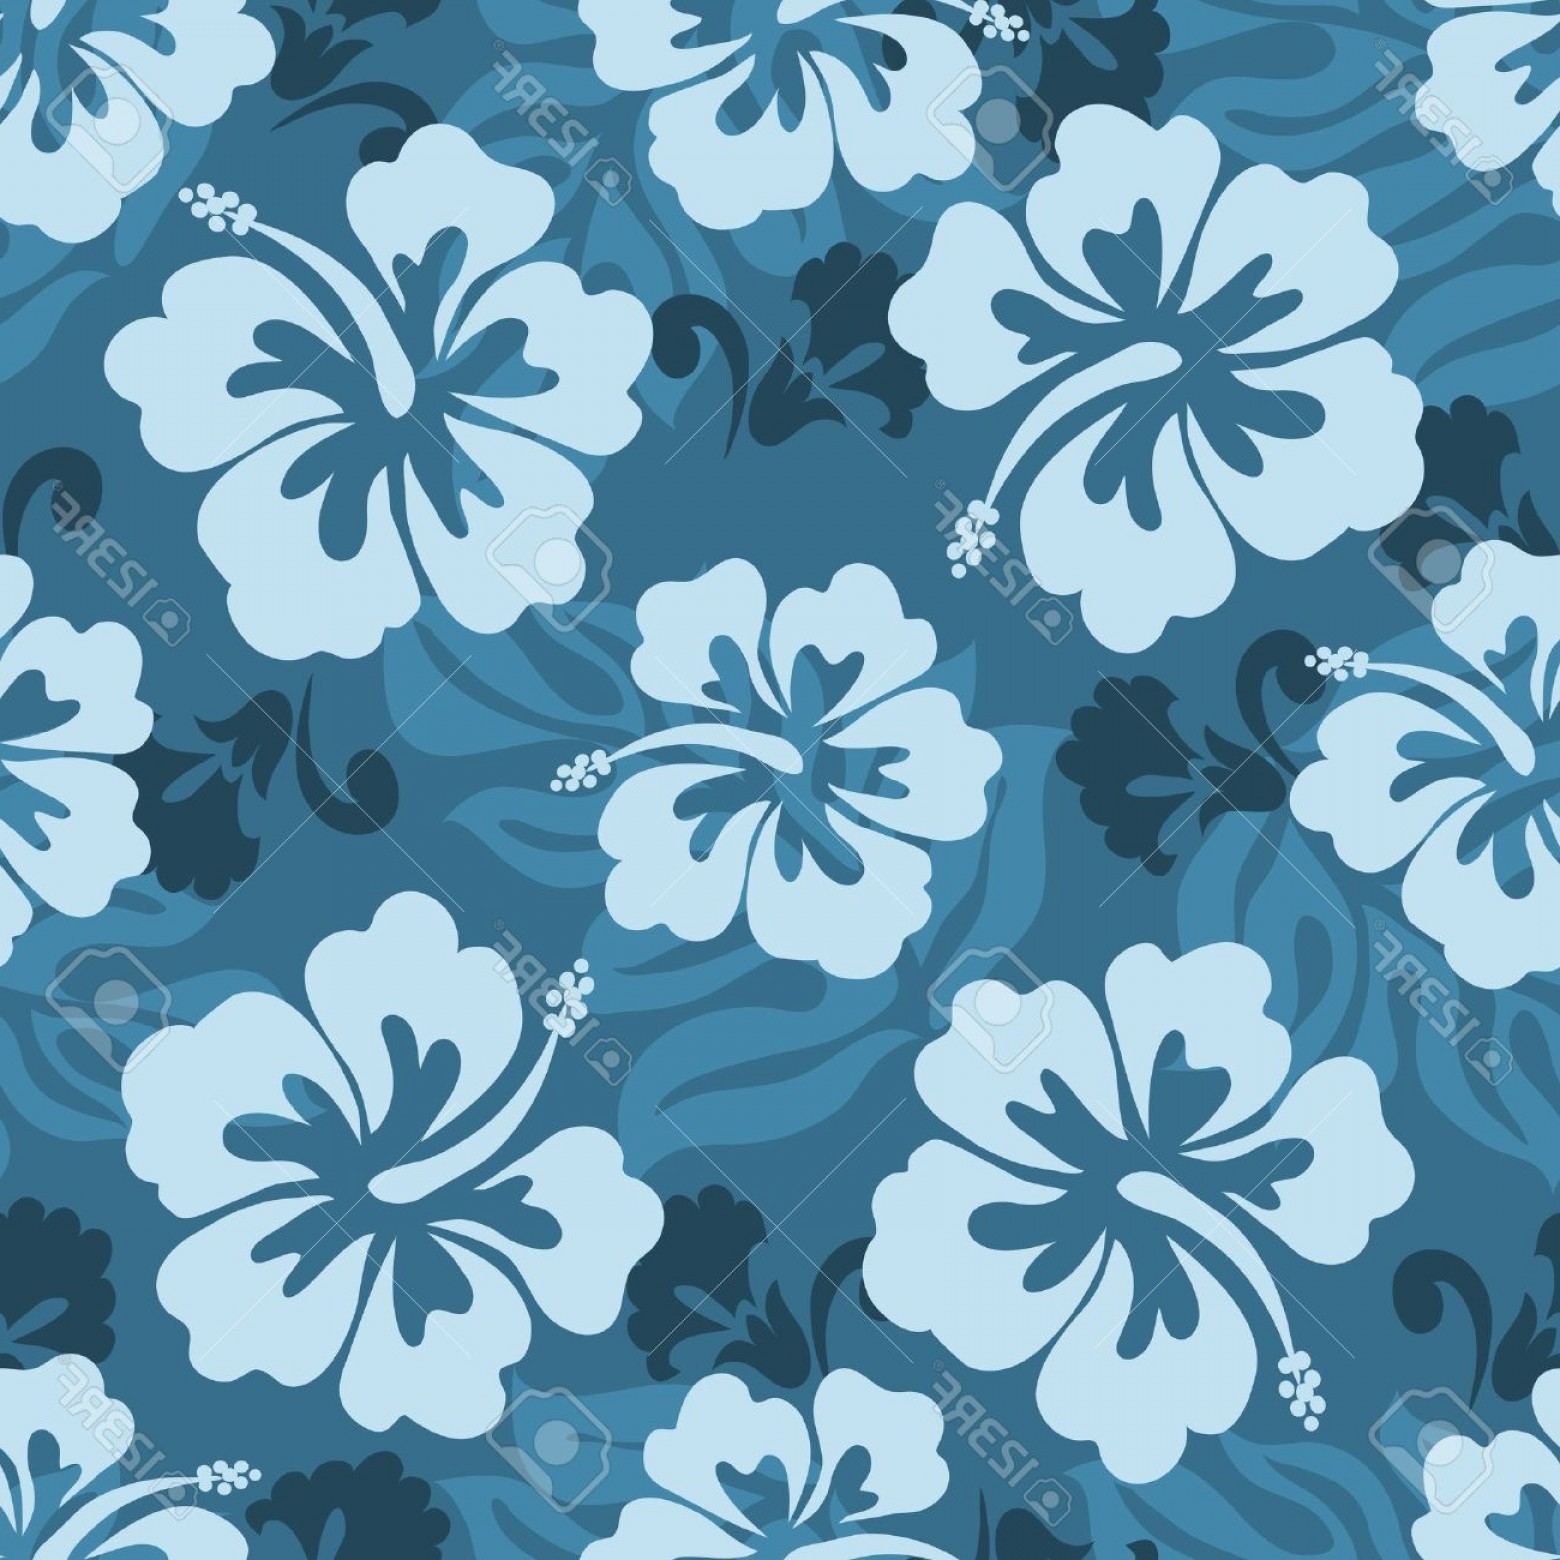 Hawaiian Pattern Vector: Photoseamless Pattern Of Hawaiian Hibiscus Flowers And Leaves